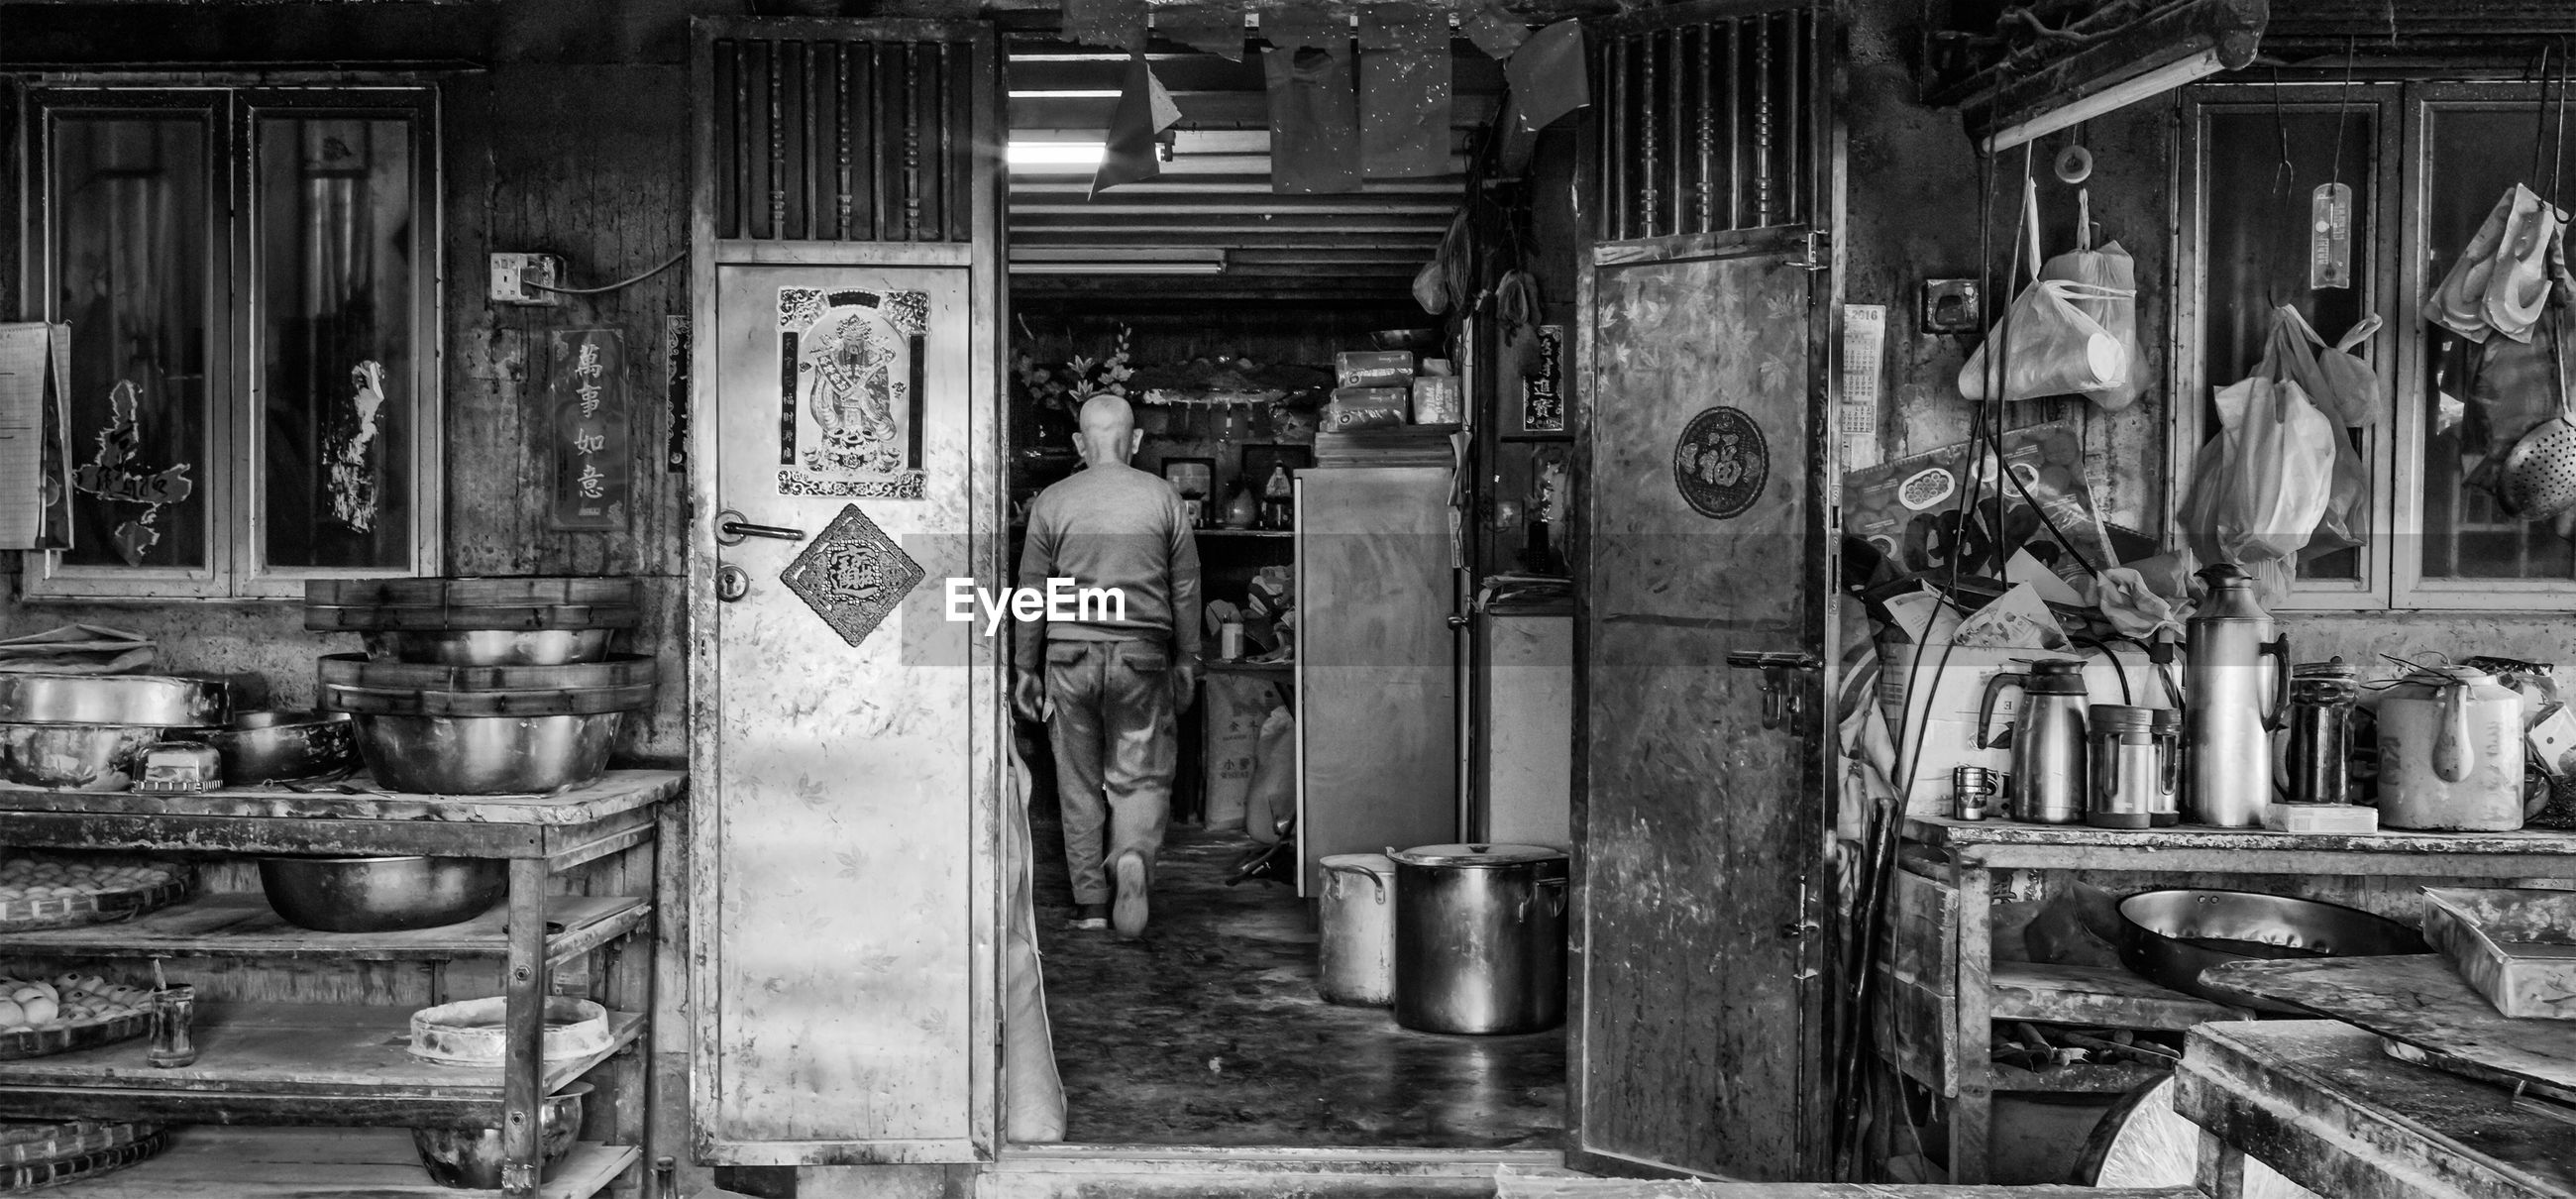 indoors, store, architecture, retail, built structure, large group of objects, in a row, shop, no people, old, interior, door, empty, small business, wood - material, day, abandoned, incidental people, shelf, absence